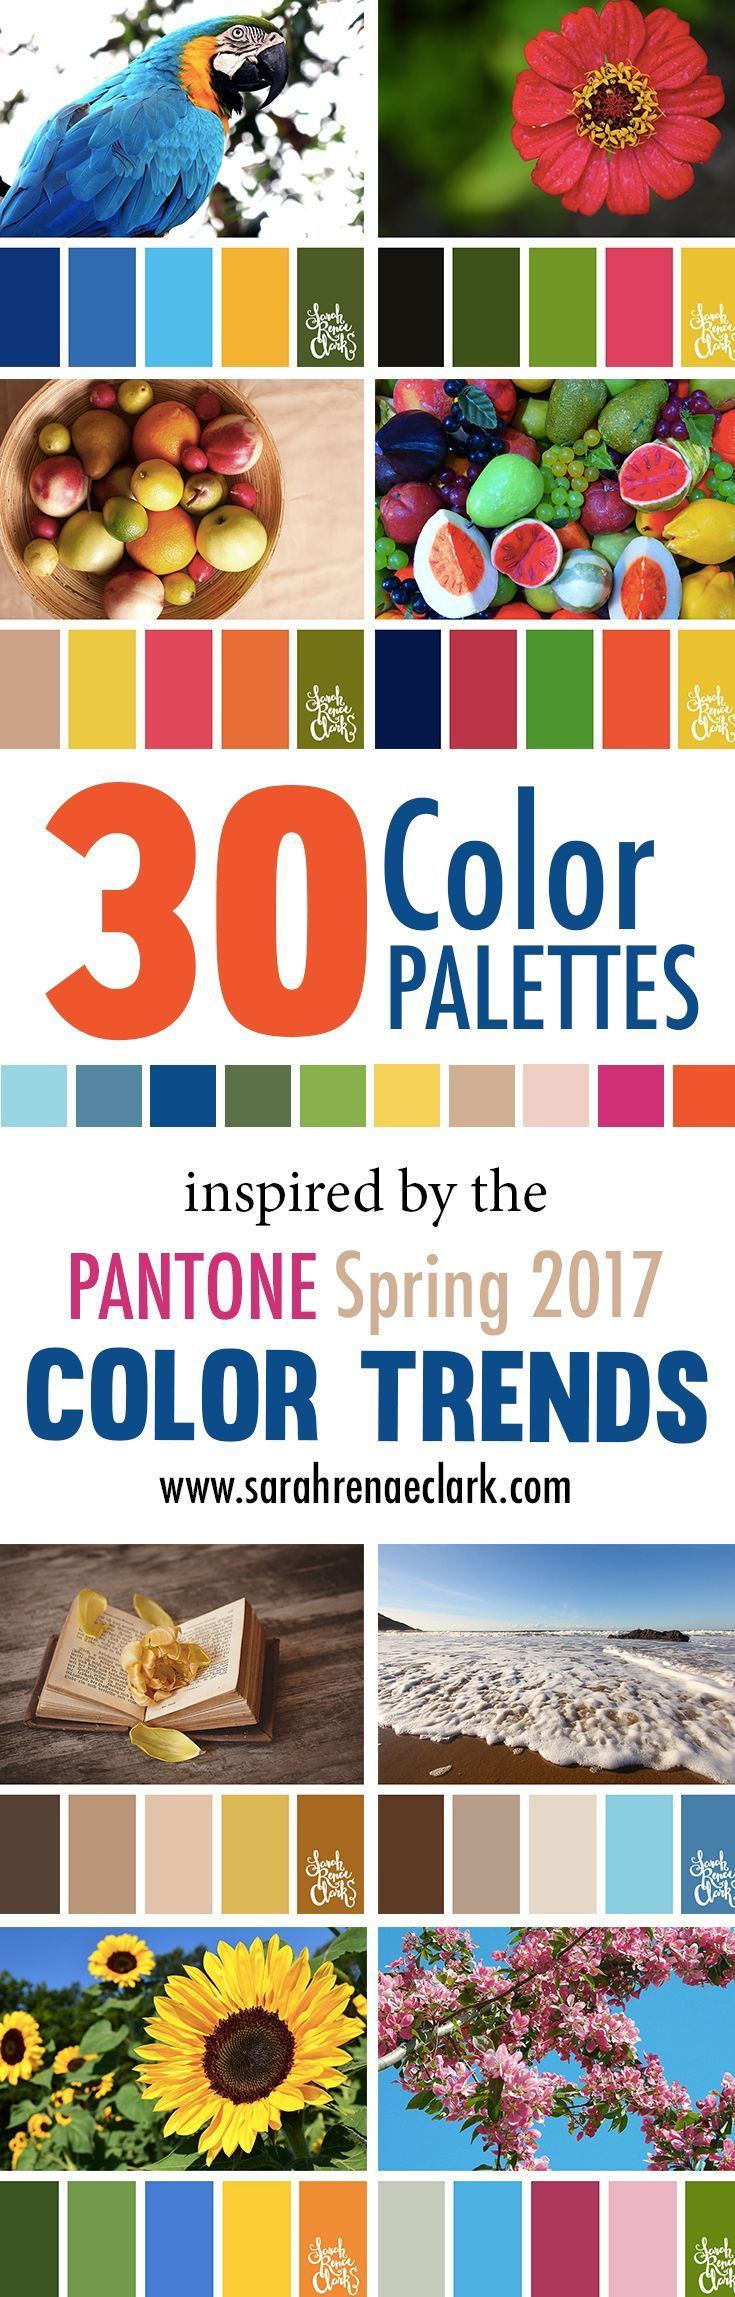 30 color palettes inspired by the pantone spring 2017 color trends